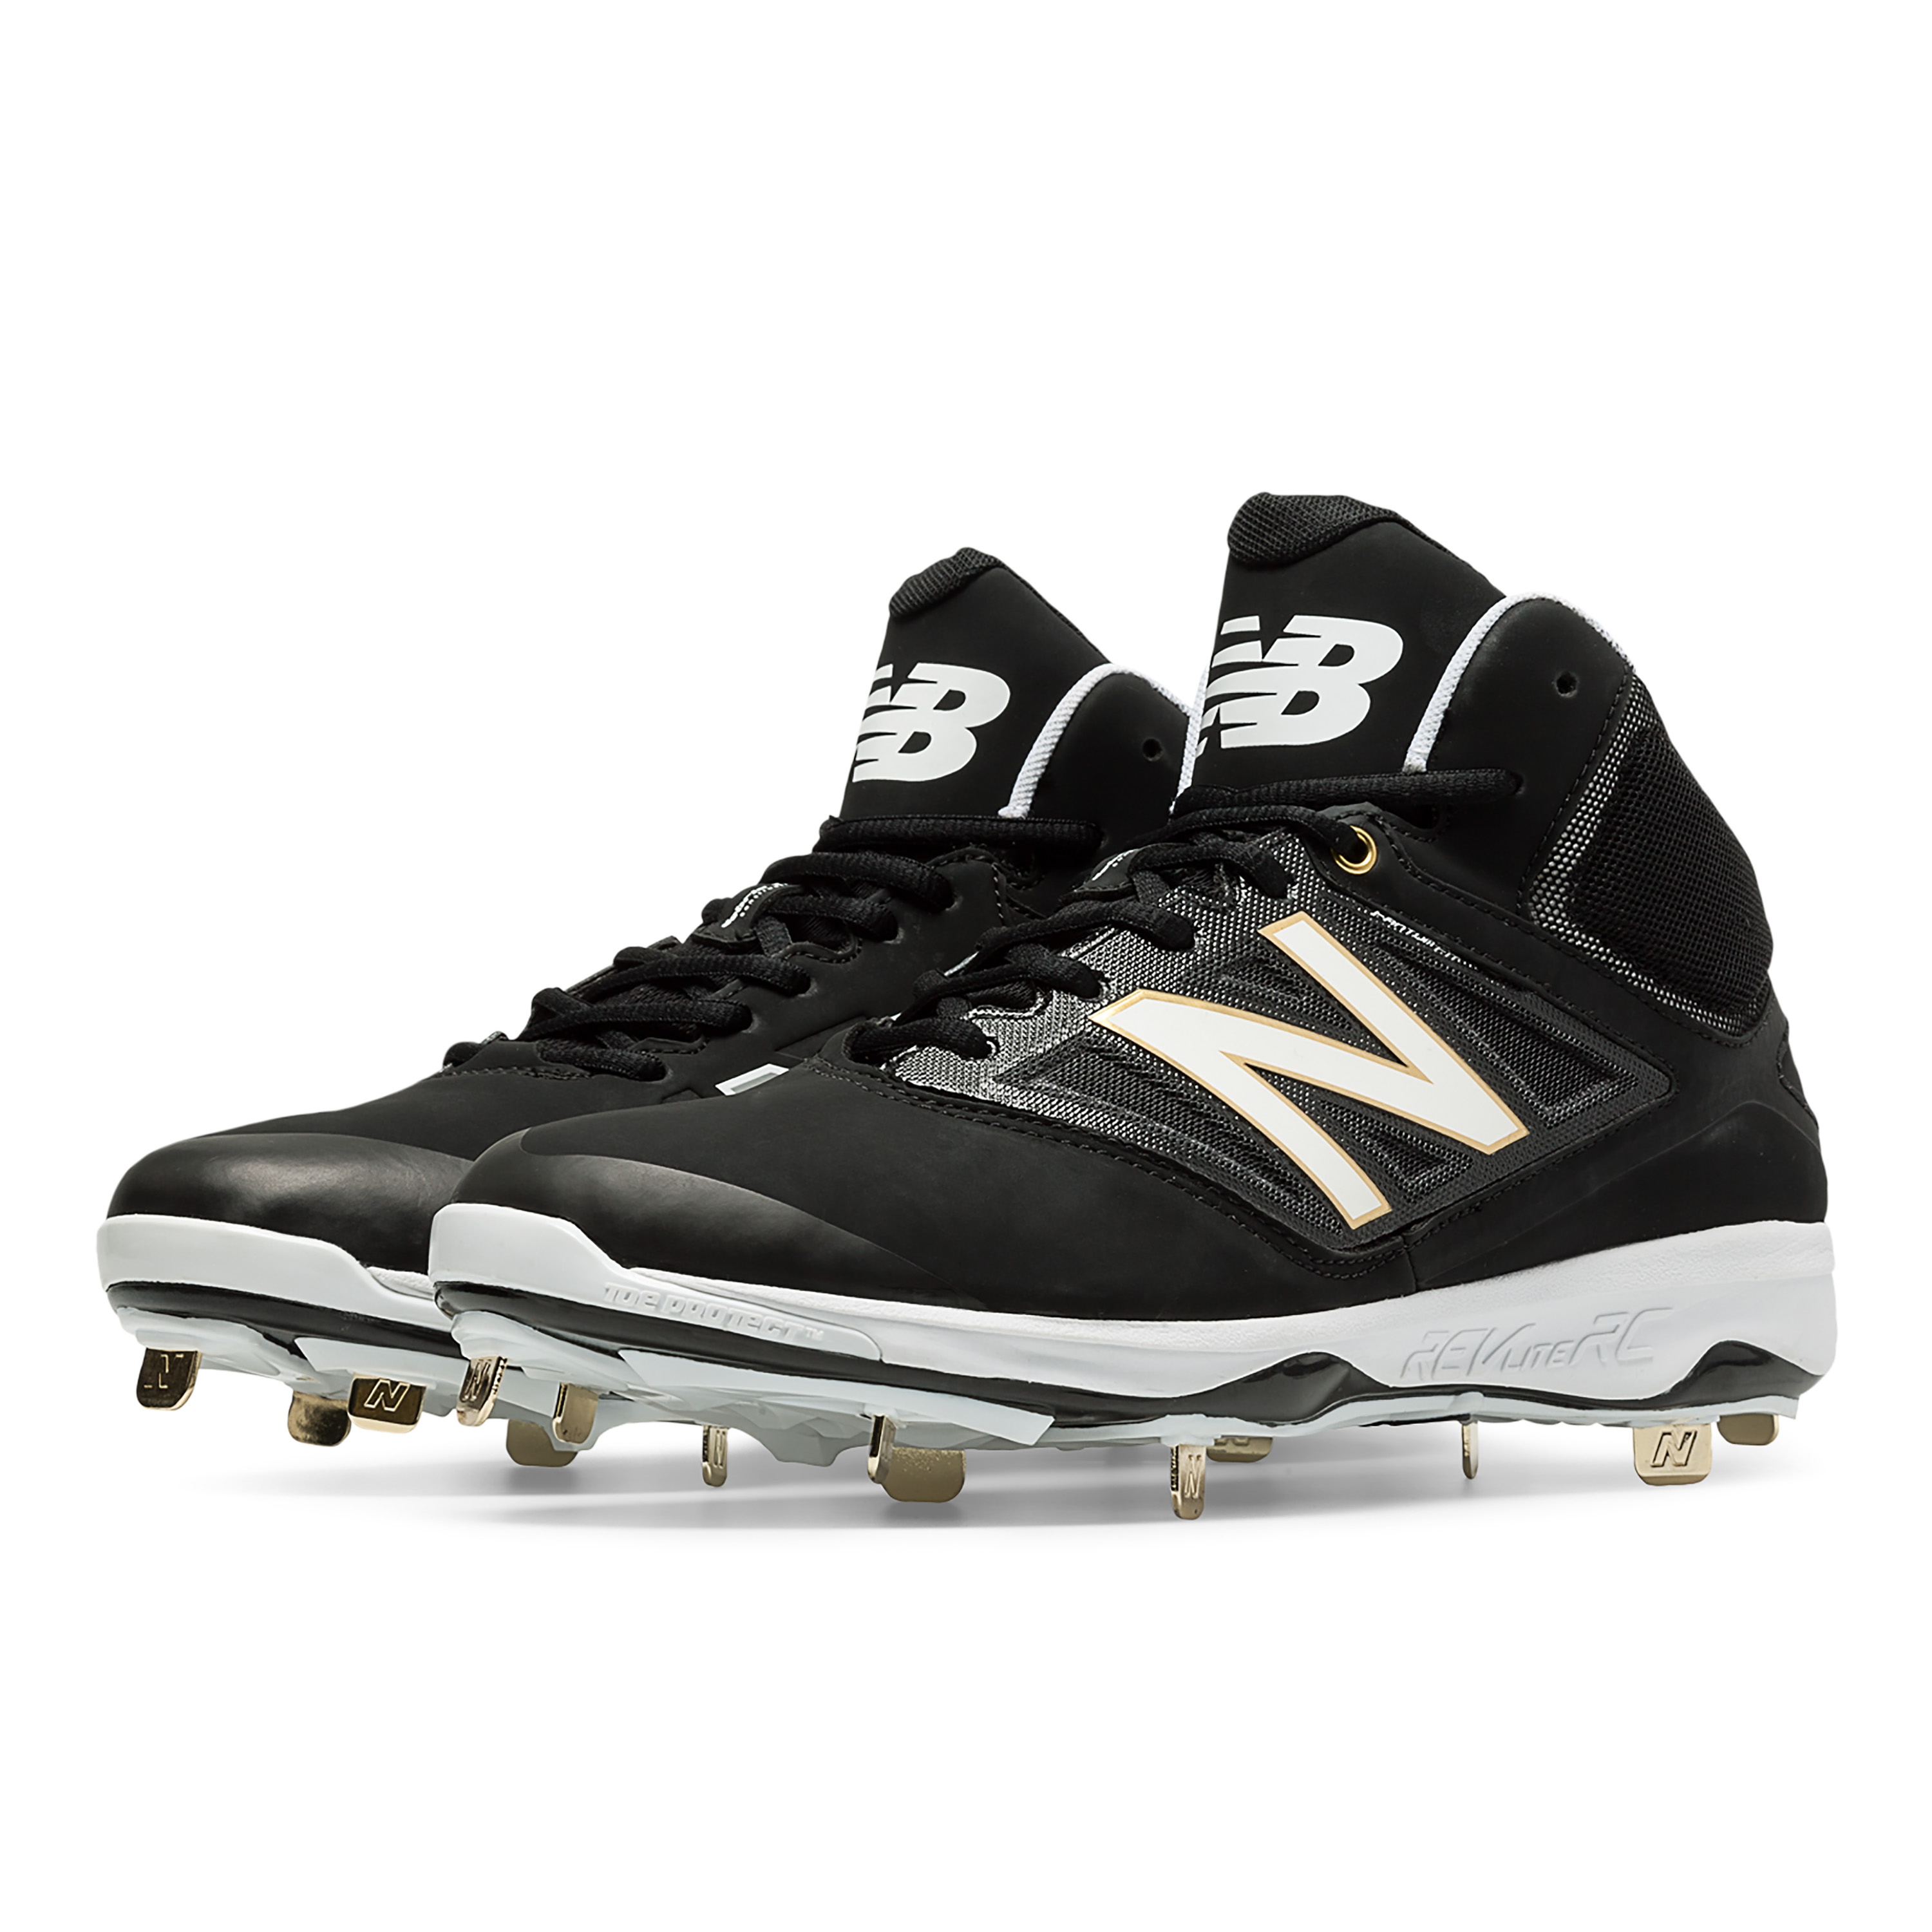 New Balance 4040v3 Mid-Cut Metal Men's Cleat | Source For Sports